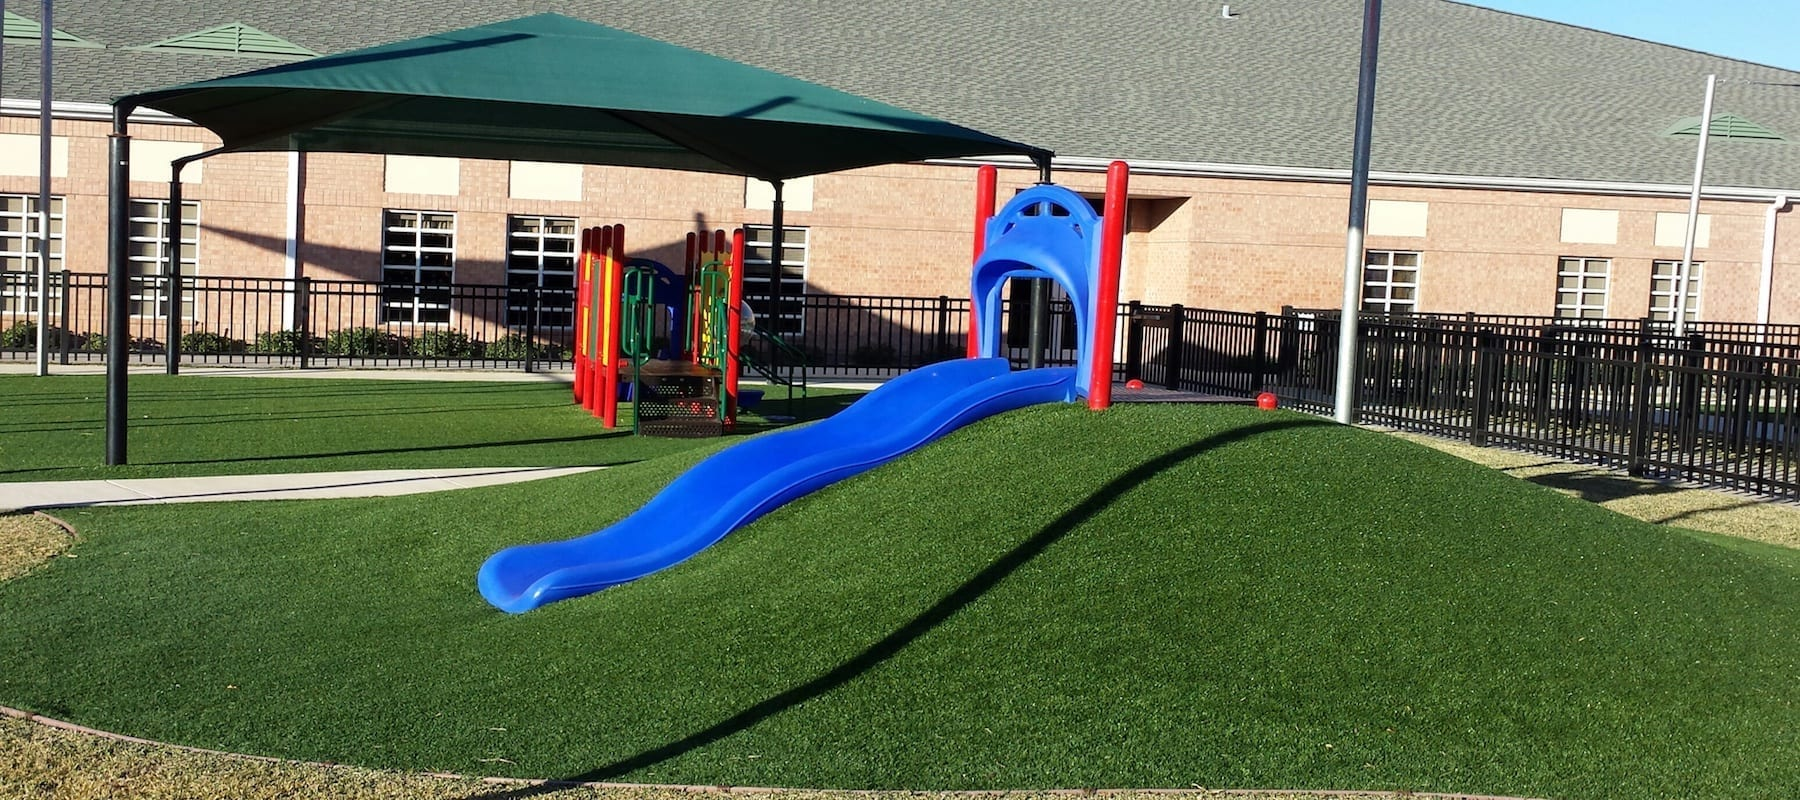 <p>From backyard playscapes to apartment complexes or schoolyard jungle gyms, the types of substrate to use for your lawn widely varies. The use of artificial turf can provide a convenient and cost-effective landscape for your needs. Are you looking for an affordable, low-maintenance, and safe alternative to unpredictable natural grass [&hellip;]</p>